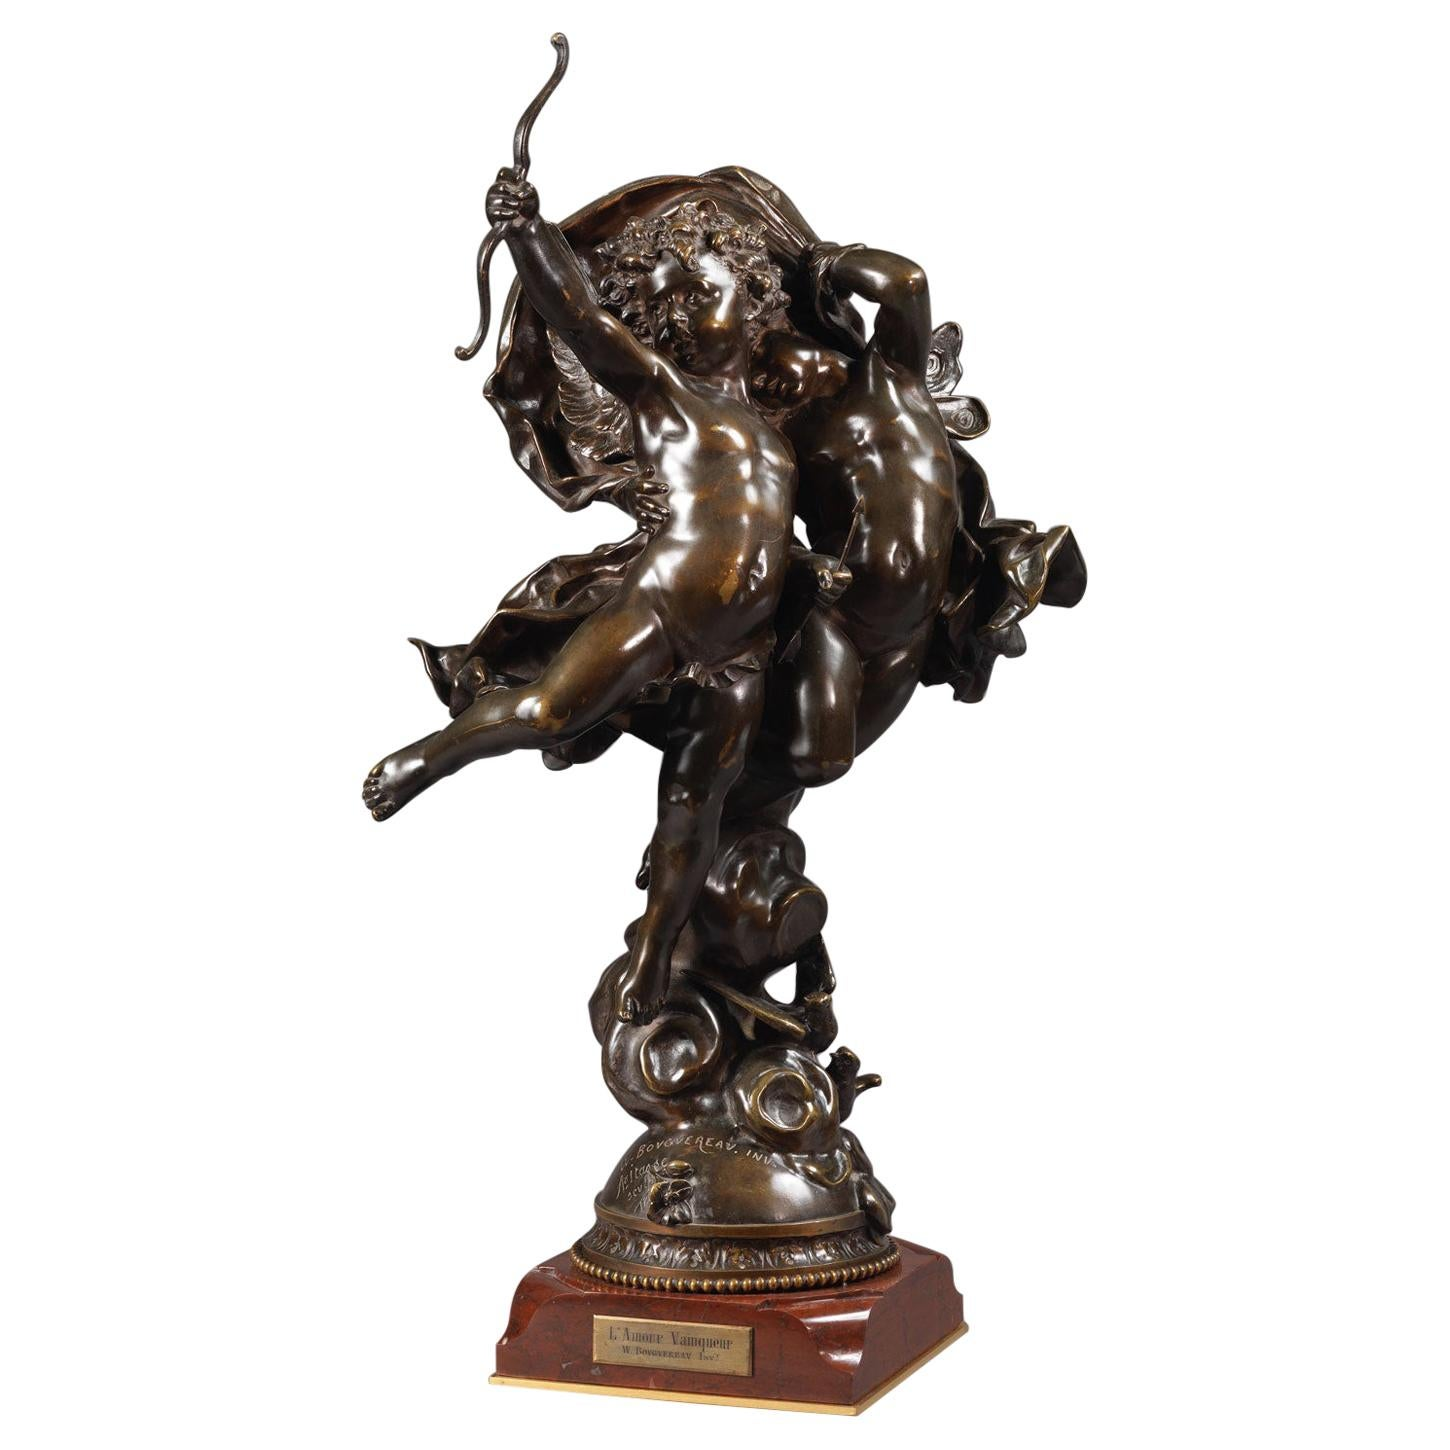 'L'amour Vainqueur', a Bronze Figural Group by Adolphe Itasse, Dated 1887